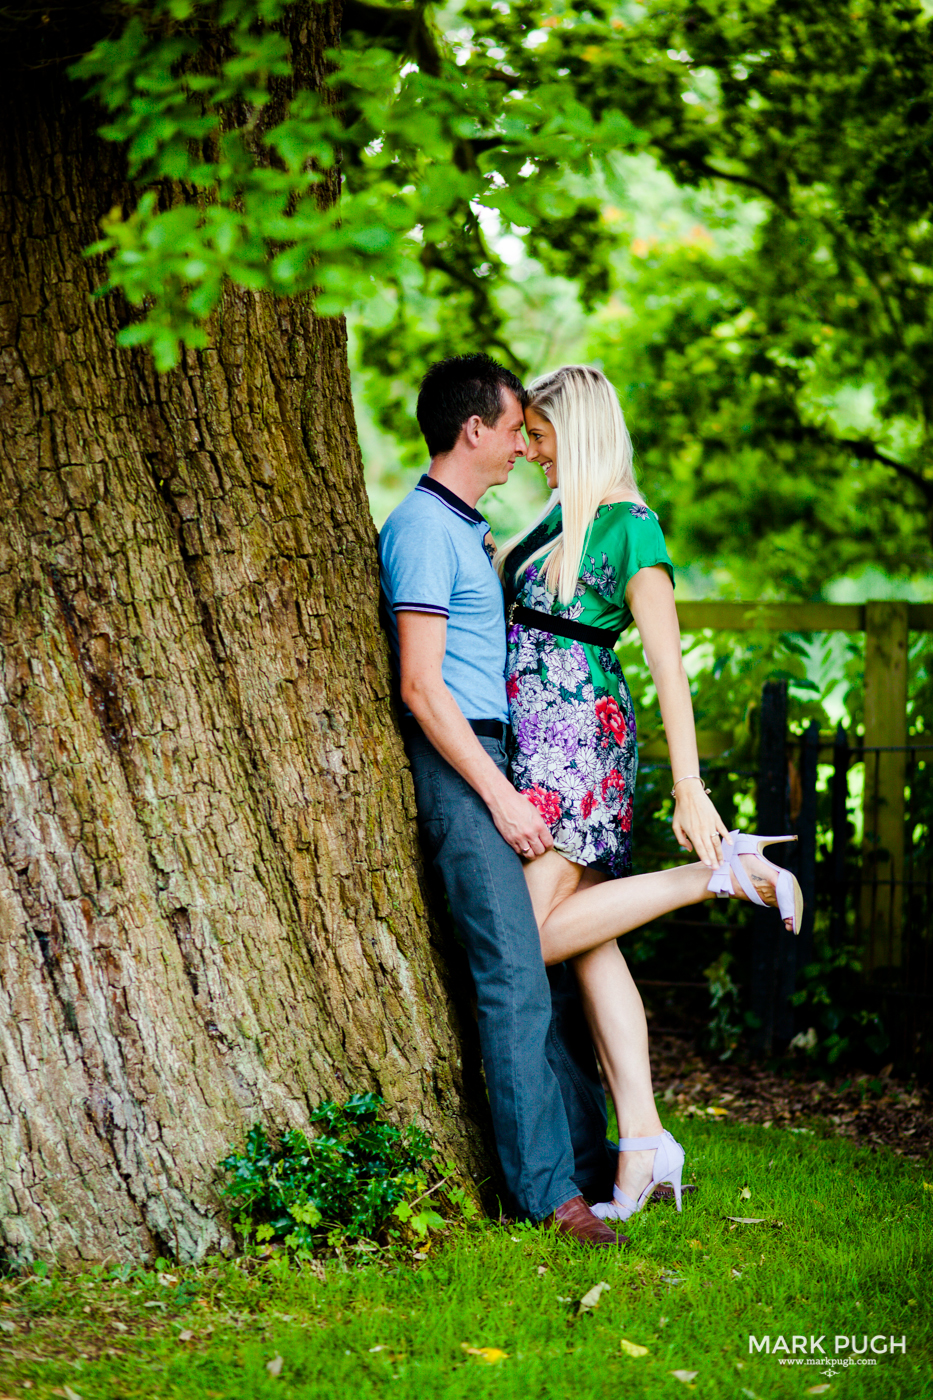 014 Nikki and Richard loveSession preWED Family Photography  at Woodborough Hall by Mark Pugh www.markpugh.com 0600.jpg